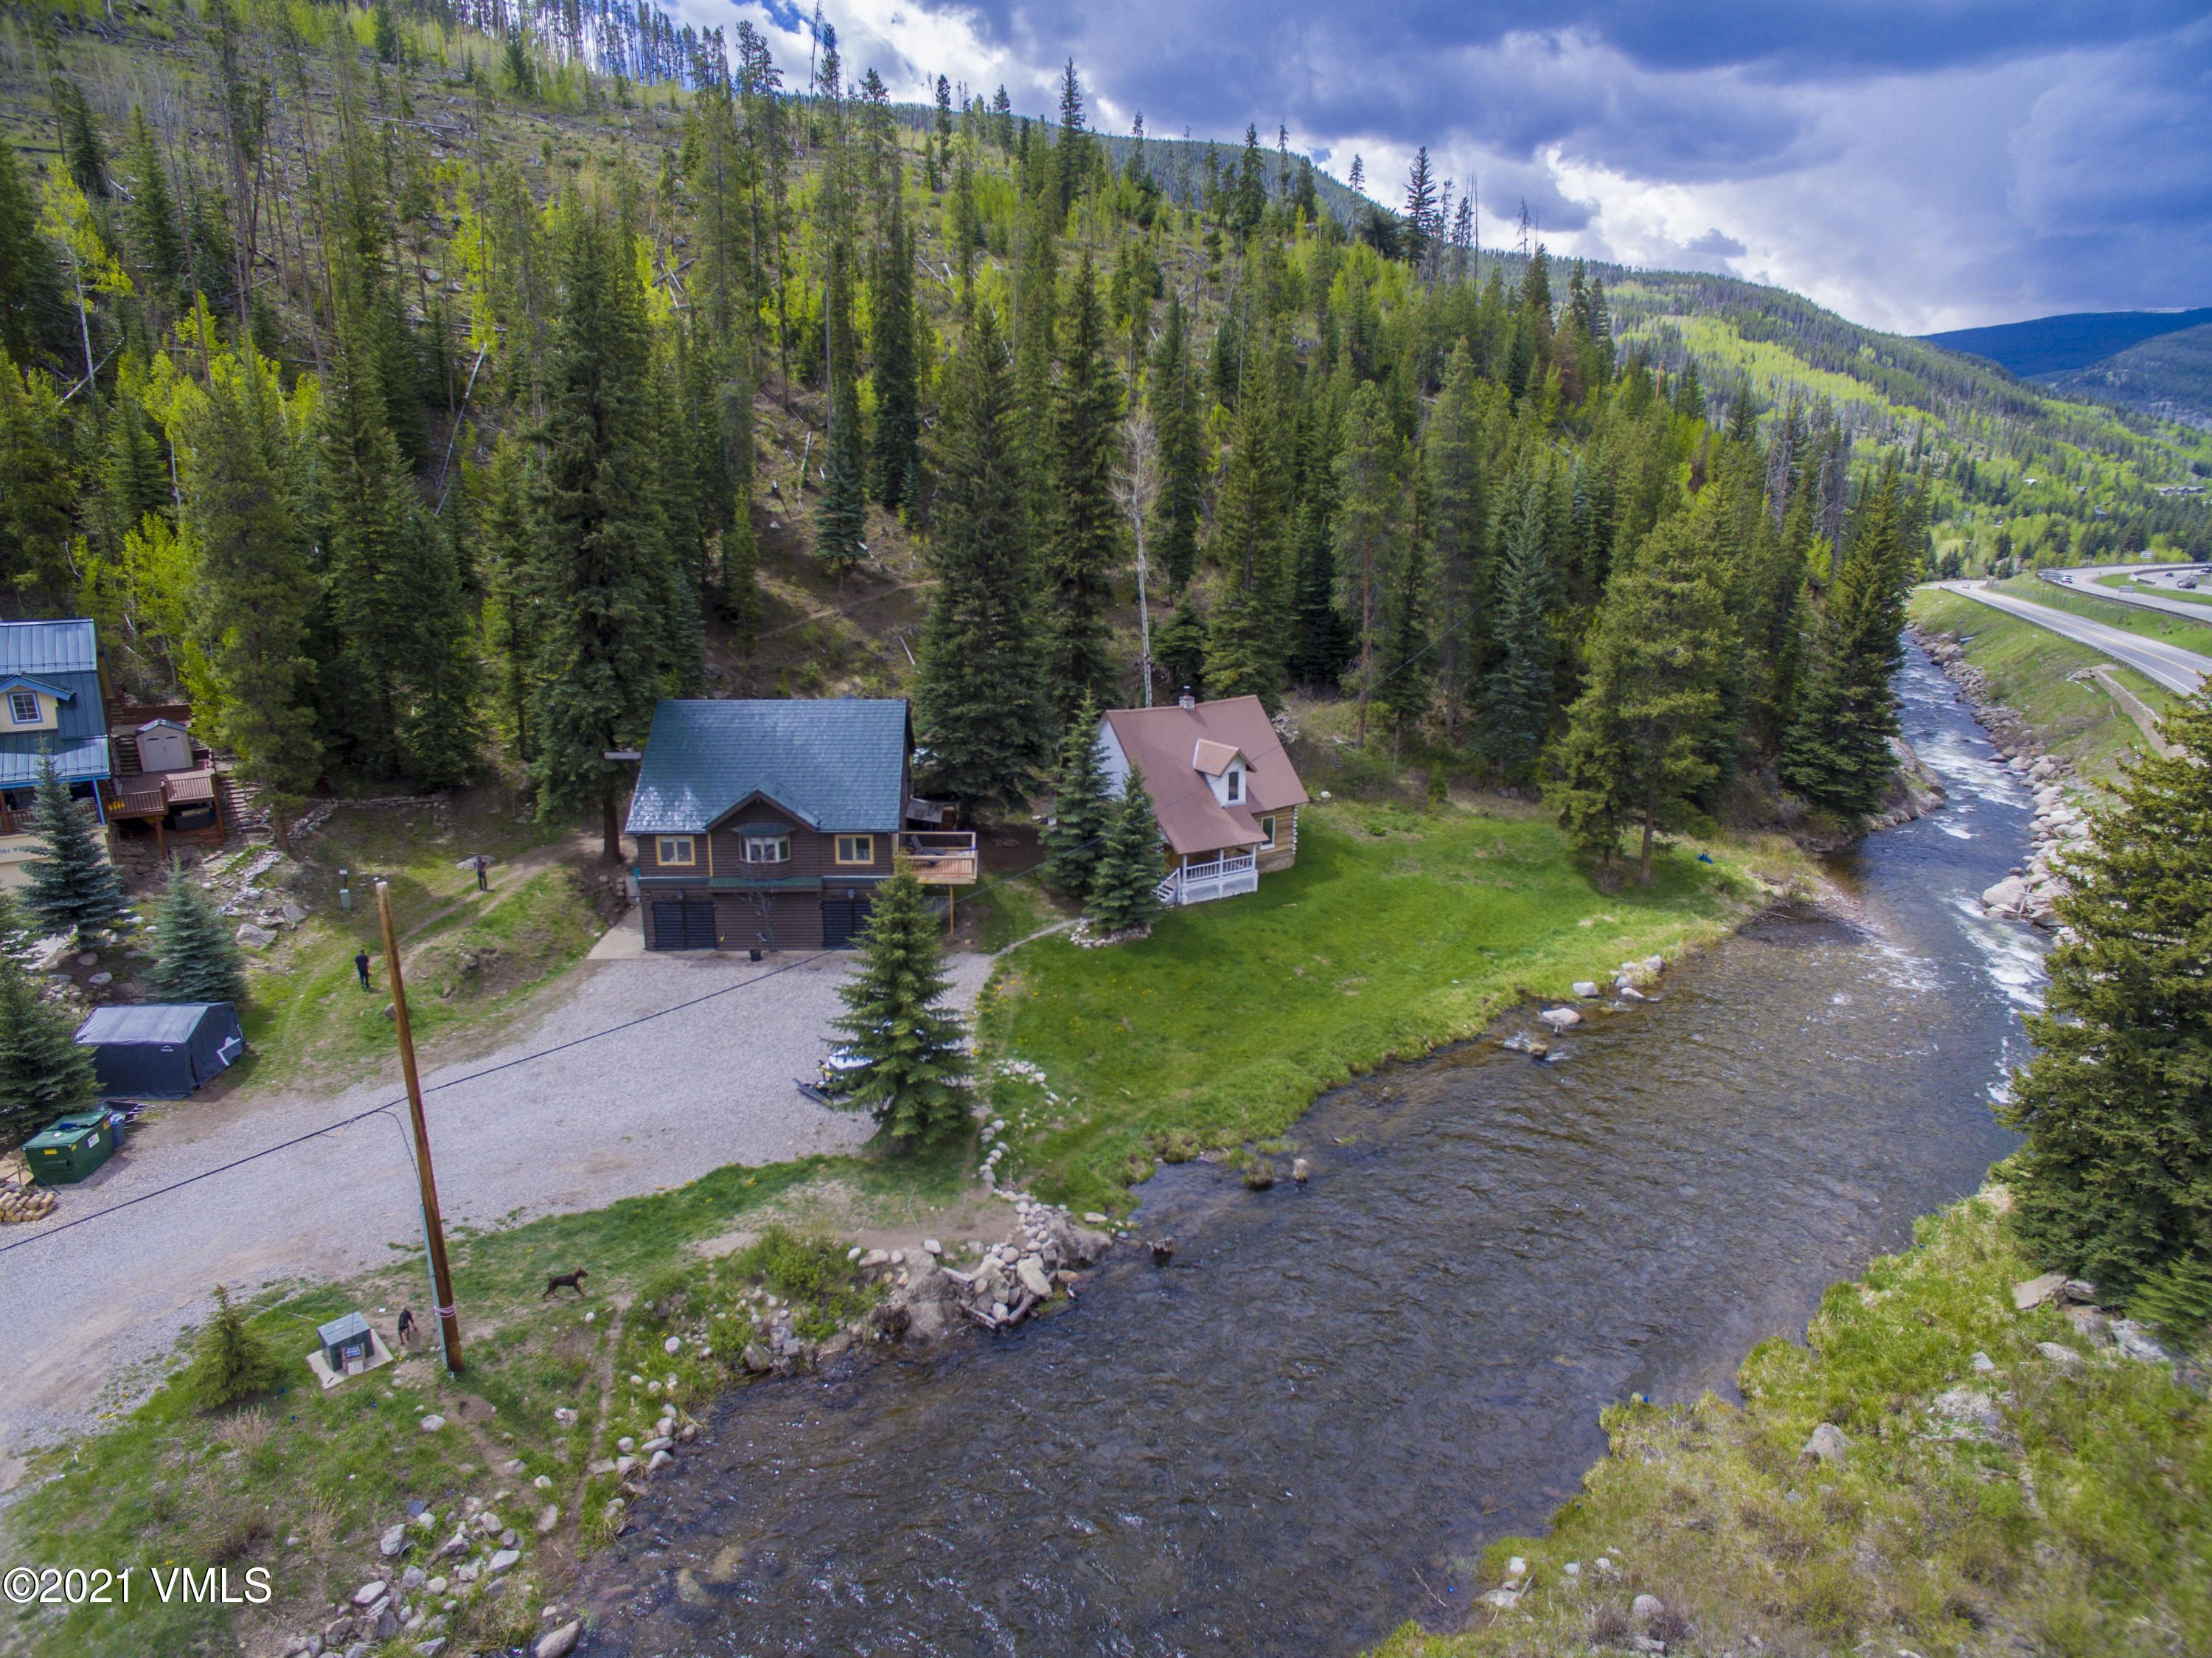 If you've ever dreamed of owning a piece of historic Vail, now is your chance. With 2.29 acres bordering National Forest and Gore Creek, 2414 Elliot Road offers two separate residences, a main house and a guest cabin. This unique property offers a mountain lifestyle without compromise. You can enjoy privacy and seclusion while also being minutes away from World-class skiing, shopping, restaurants and entertainment in Vail and Beaver Creek.  The location and land are only part of the appeal to this prime piece of Vail real estate. Both the main house and guest cabin have been tastefully renovated to feel modern, yet cozy. With 2200 square feet, four bedrooms and two bathrooms, the main house is the perfect size. The two-car garage and generous storage are mountain house must-haves for outdoor enthusiasts. The cozy four-bedroom, three-bathroom, 1700 square foot, guest cabin is a historic piece of Vail that has been preserved and renovated to uphold its timeless log cabin ambiance while offering modern updates and comfortable living, including a private hot tub. Keep it for your family and friends or use it as a reliable source of short-term rental income. Guests will love the convenient location, located on the bus route. Don't miss this rare opportunity to own a timeless historic property in Vail. This year-round retreat will be a place for family and friends to enjoy an adventurous, yet serene, mountain lifestyle for years to come. VRBO link for the historic cabin to view pictures and rental rates/calendar. https://www.vrbo.com/887739?adultsCount=2&arrival=2021-09-09&childrenCount=2&departure=2021-09-30&petIncluded=true